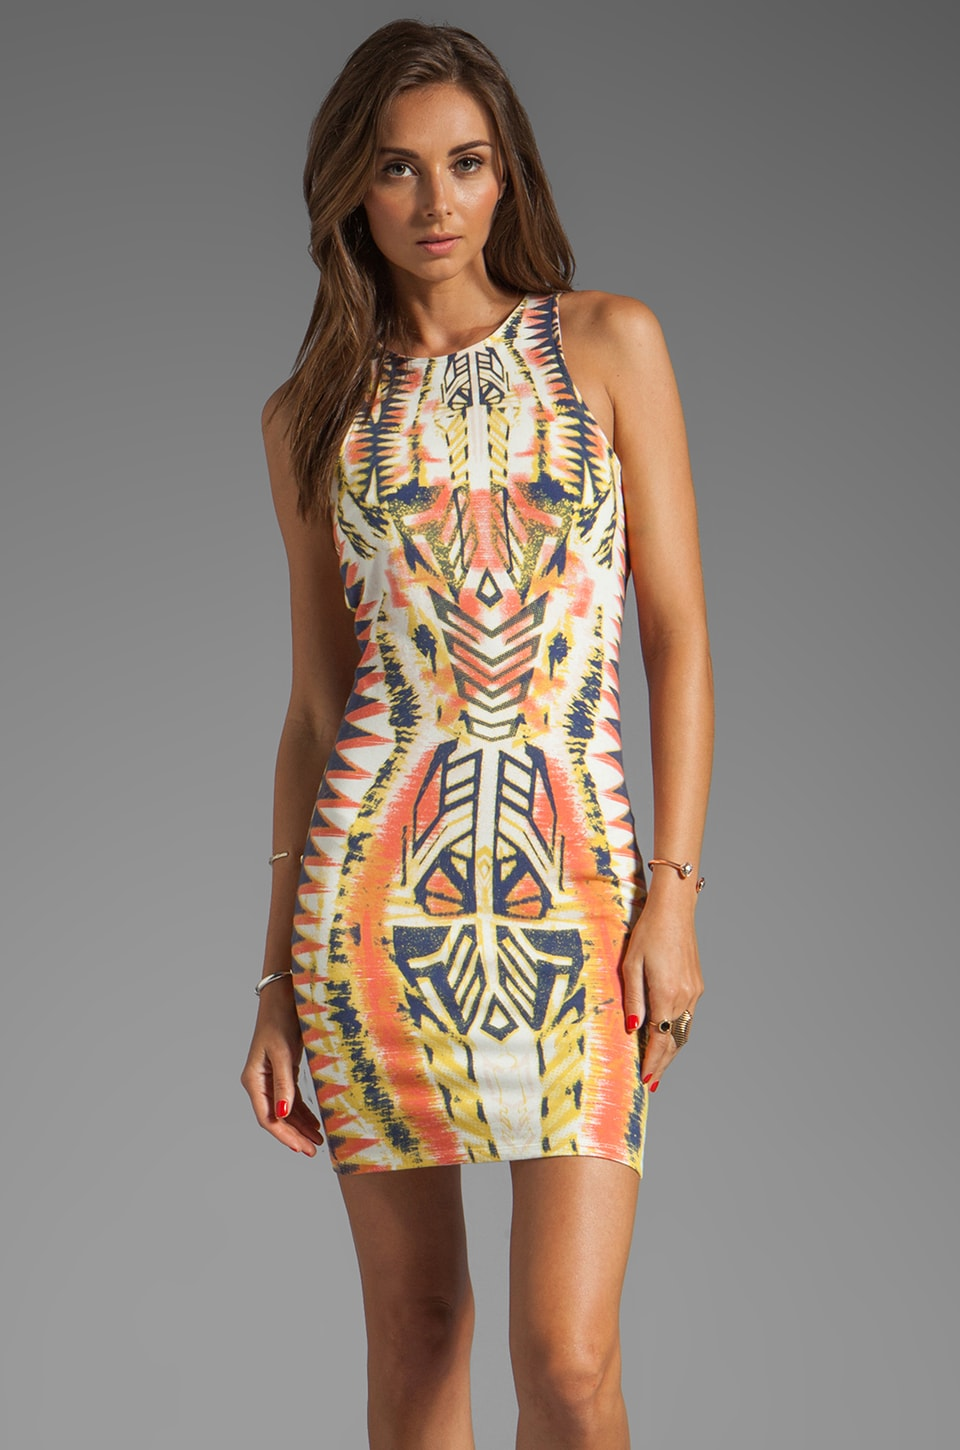 Bardot Rider Print Dress in Multi